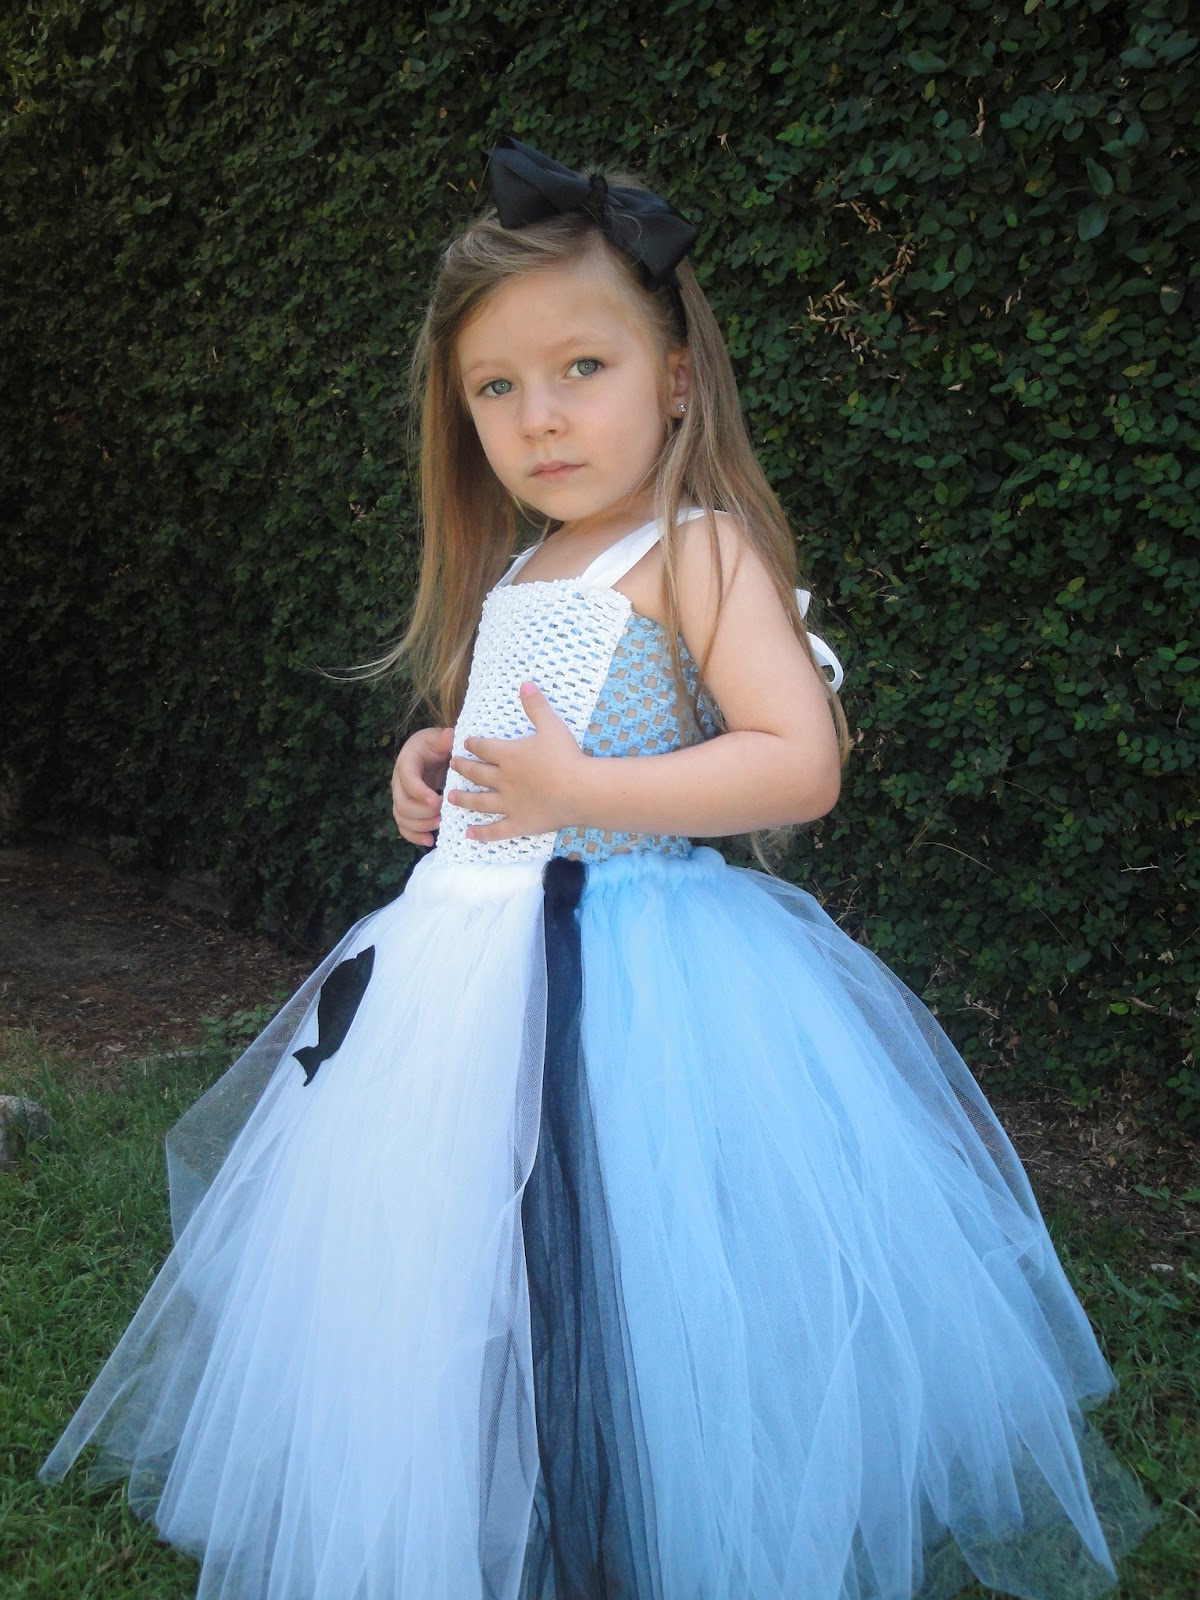 ~~~~Welcome to Hollywoodtutu~~~ This adorable handmade Alice in wonderland tutu dress costume is perfect ...  sc 1 st  Hollywoodtutu dresses & Hollywoodtutu dresses: Alice in wonderland costume